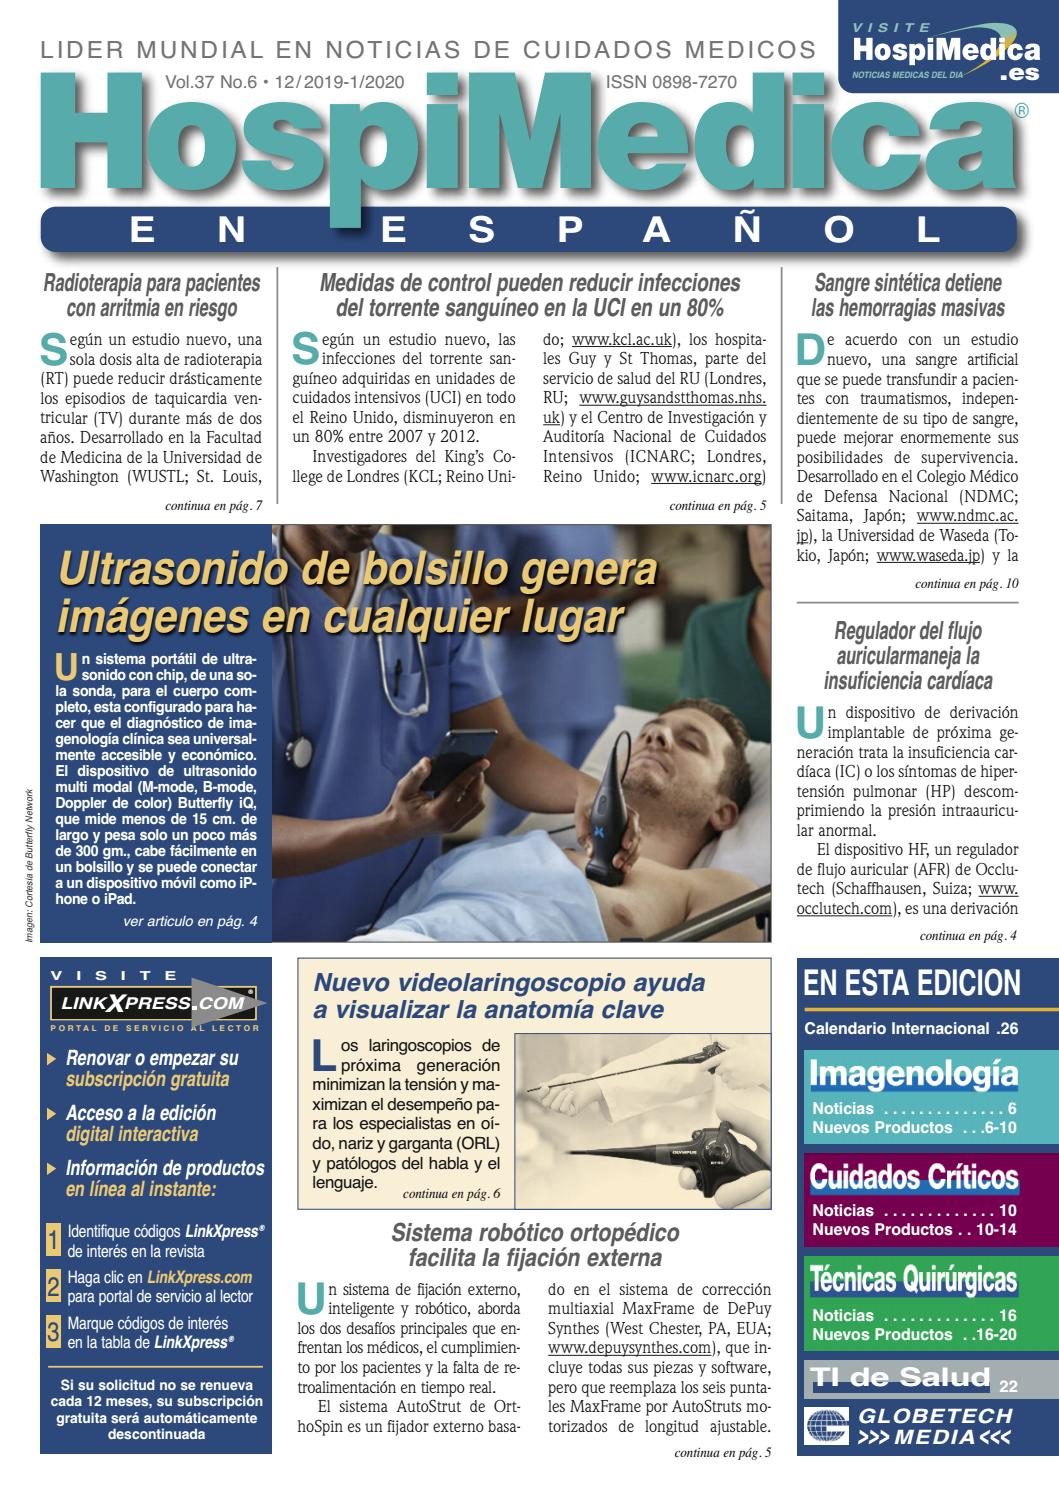 diabetes no diagnosticada reino unido 2020